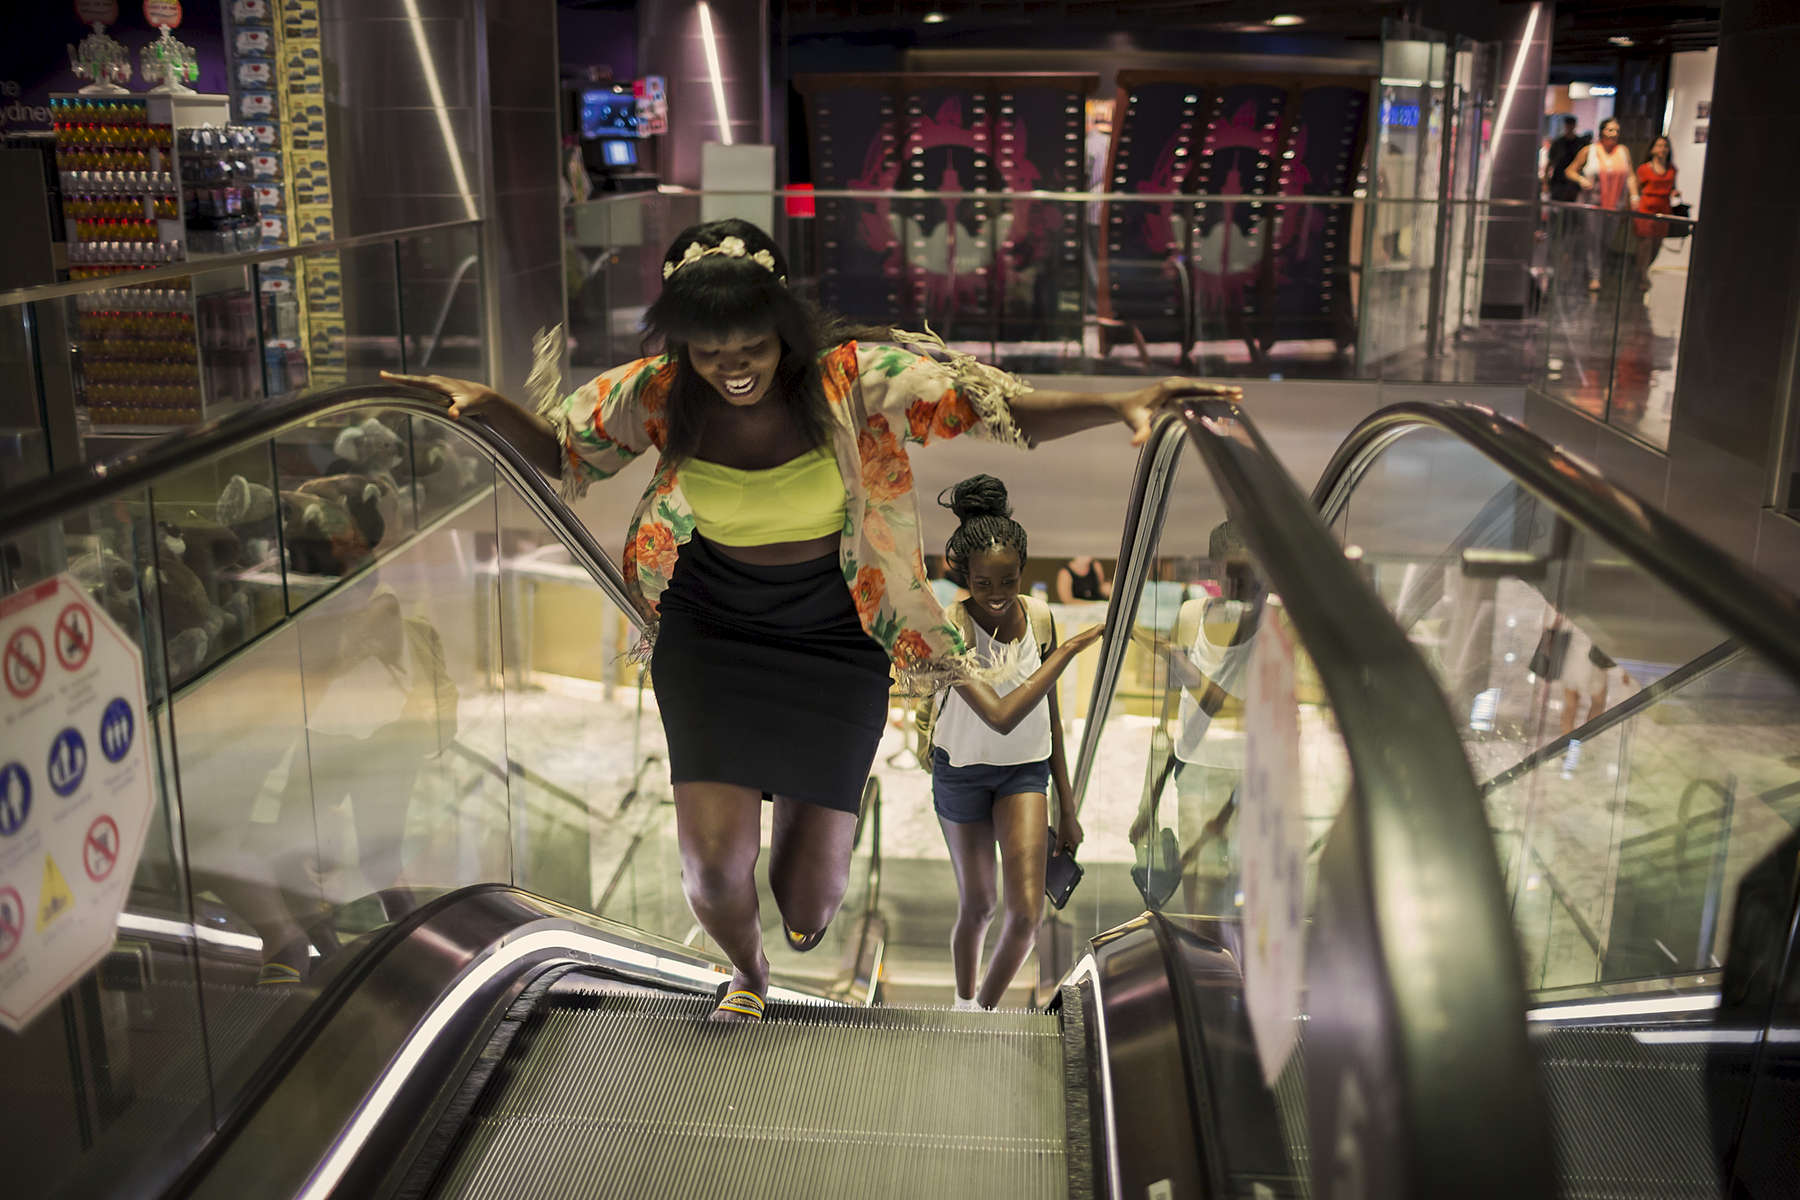 Achingol Mayom and her cousin Agudi run up a descending escalator in a Sydney shopping centre. When asked about the role of language in keeping South Sudanese culture alive, Achingol responded, 'at home and with my friends I speak a mixture of English and Dinka, I call it Dinklish'.  Aged 7 Achingol arrived in Australia in 2003 with her Mother and five siblings. A year later in 2004 the family moved across the road from the photographer and it is where they first met. Achingol was part of a group of young Australian South Sudanese who participated in a cell phone photography project the photographer crowd funded to run in January 2015.